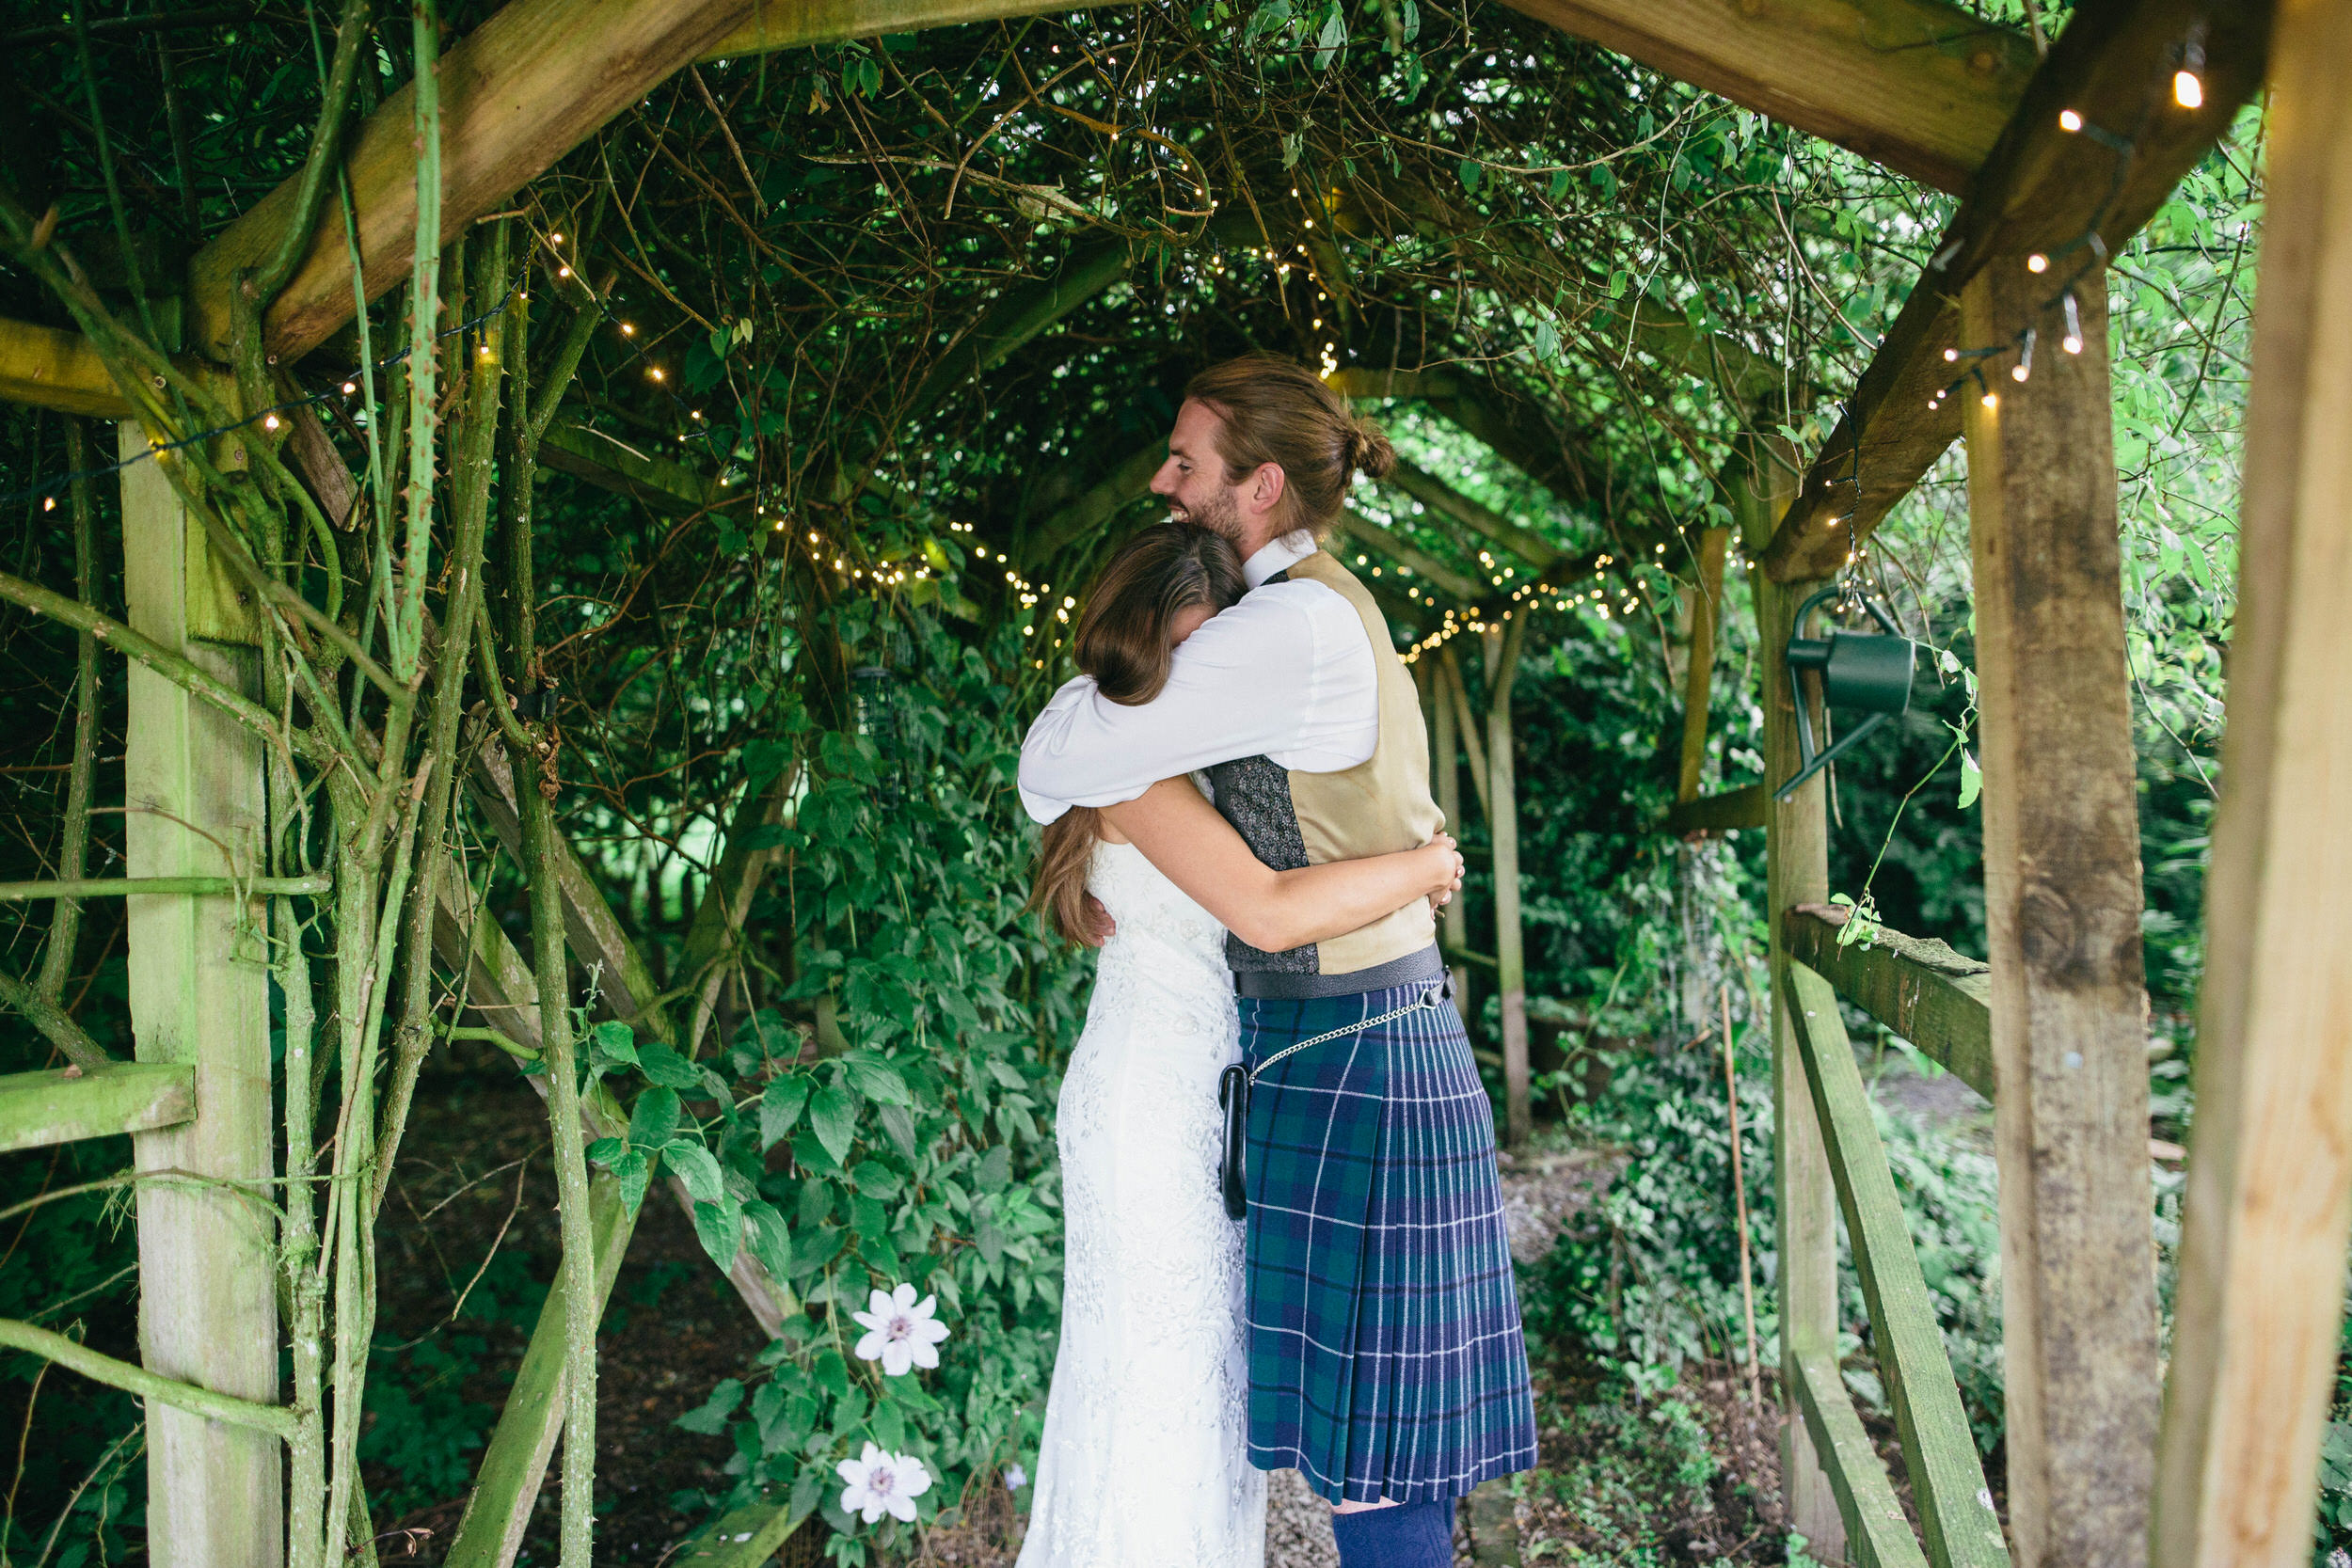 Alternative Quirky Wedding Photographer Scotland Borders Edinburgh 139.jpg